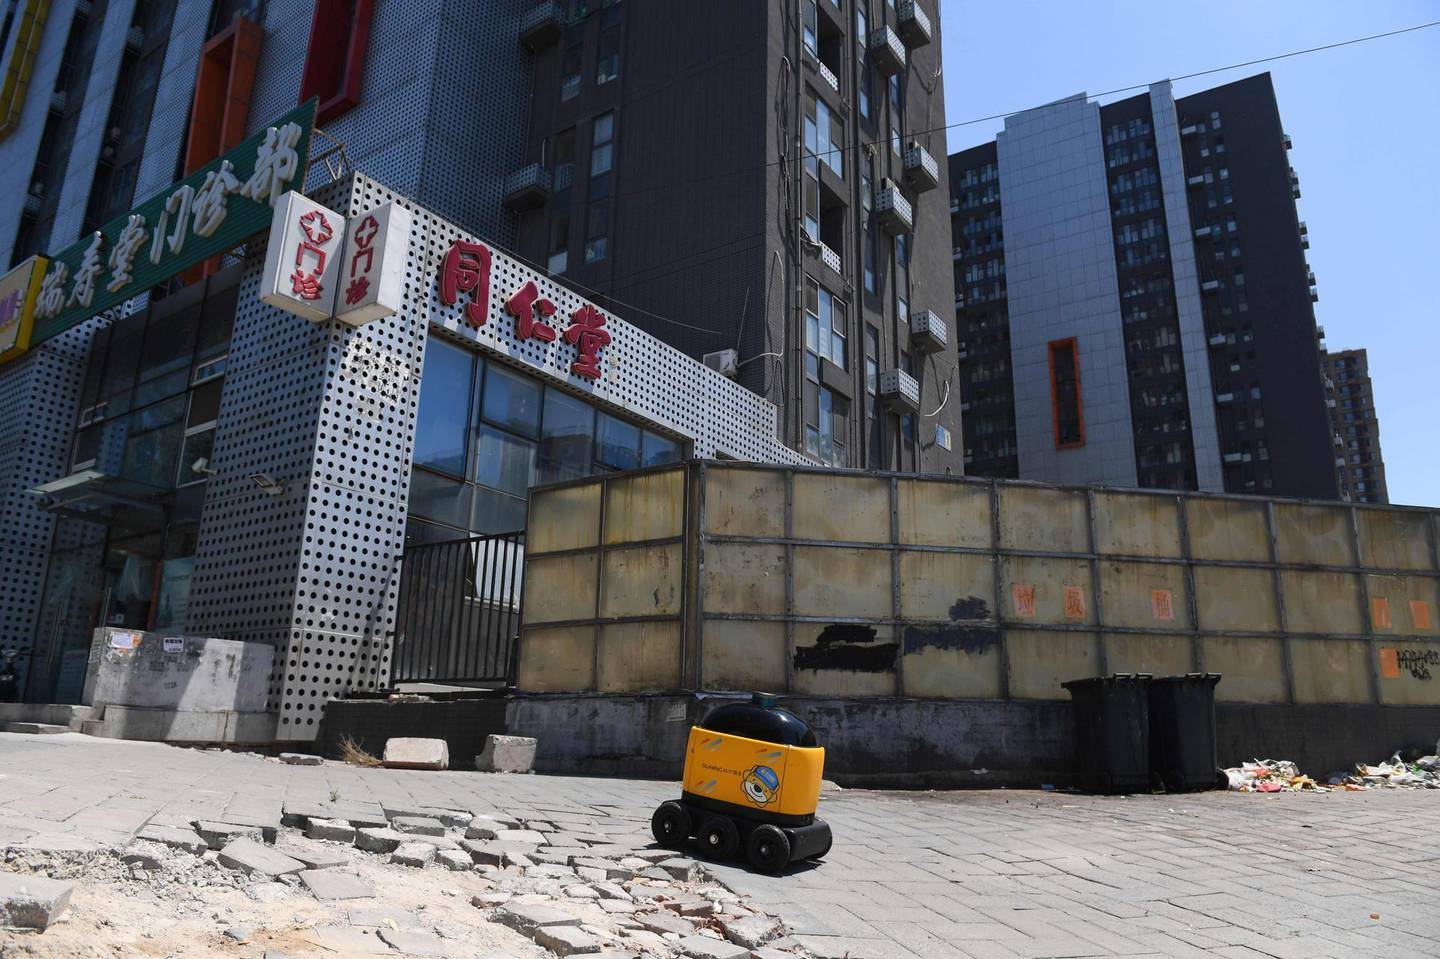 """A Zhen Robotics delivery robot makes its way from a Suning supermarket to a residential compound during a demonstration of the robot in Beijing. Along a quiet residential street on the outer edges of Beijing, a yellow and black cube about the size of a small washing machine trundles leisurely to its destination. This """"little yellow horse"""" is an autonomous delivery robot, ferrying daily essentials like drinks, fruit and snacks from the local store to the residents of the """"Kafka"""" compound in the Chinese capital.  - TO GO WITH AFP STORY CHINA-TECHNOLOGY-ROBOTS-CONSUMER-SCIENCE,FEATURE BY LUDOVIC EHRET  / AFP / GREG BAKER / TO GO WITH AFP STORY CHINA-TECHNOLOGY-ROBOTS-CONSUMER-SCIENCE,FEATURE BY LUDOVIC EHRET"""